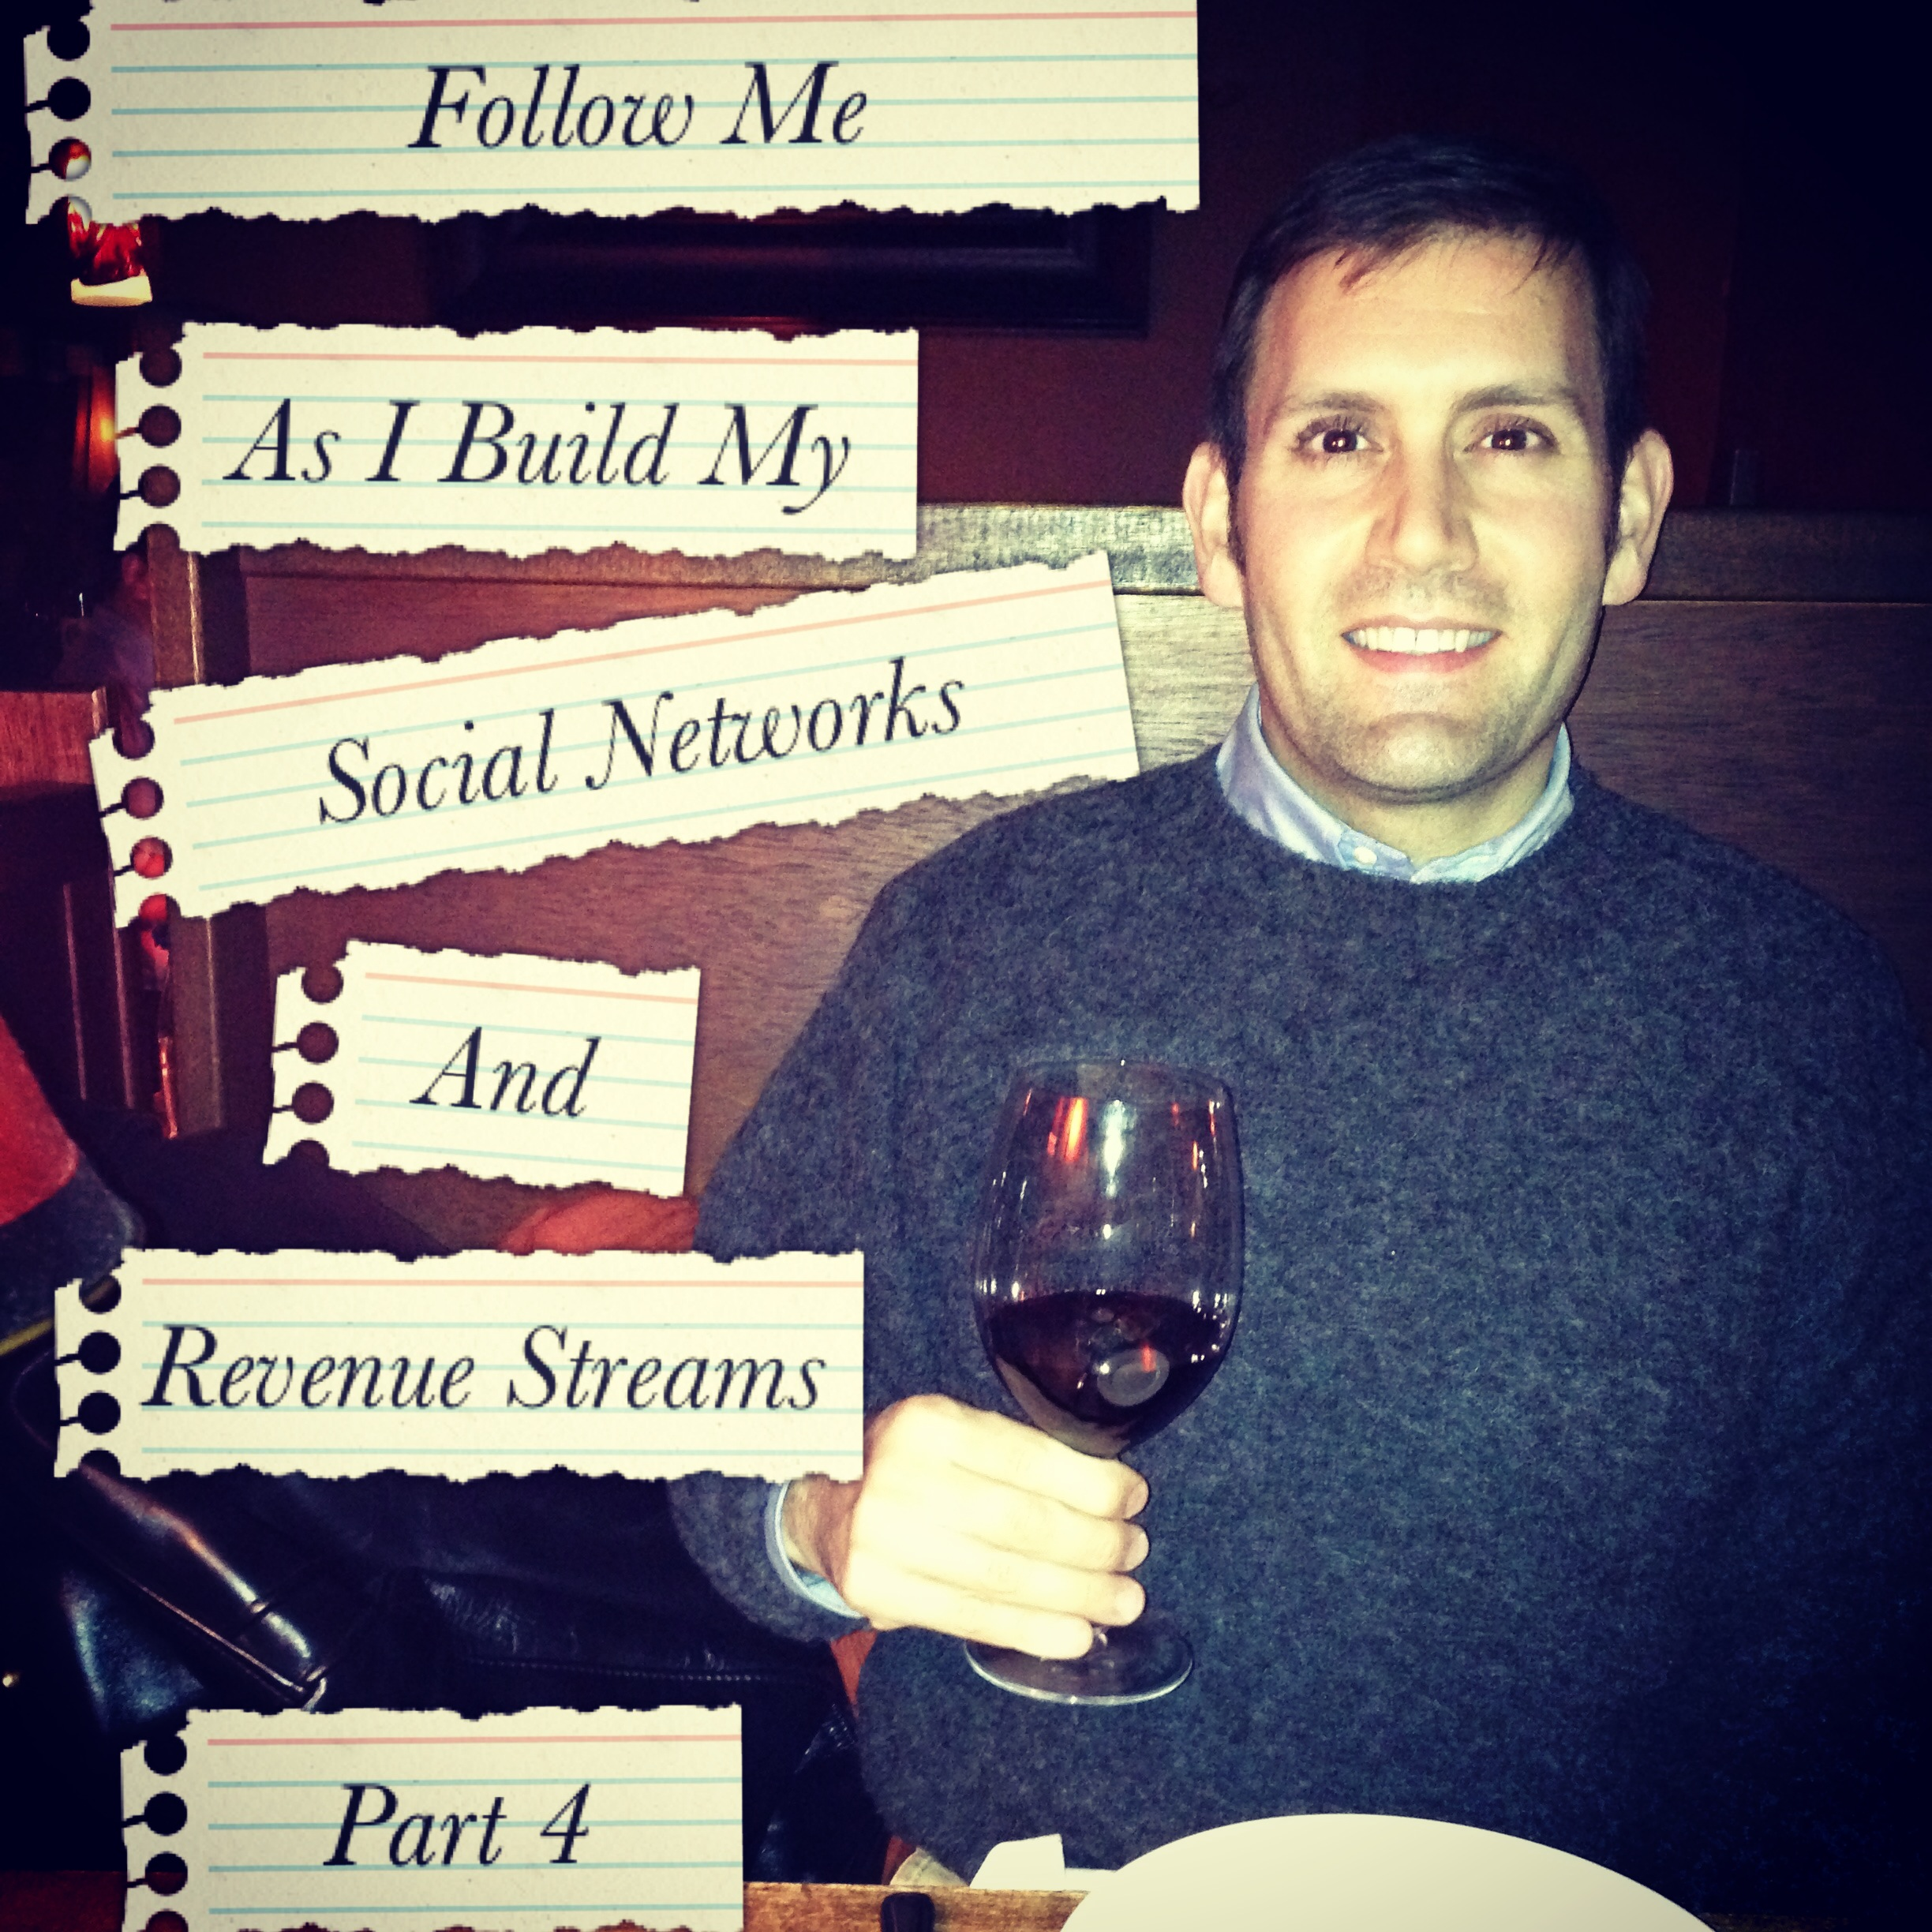 Follow Me as I build my Social Networks and Revenue Streams Part 4 January 2012